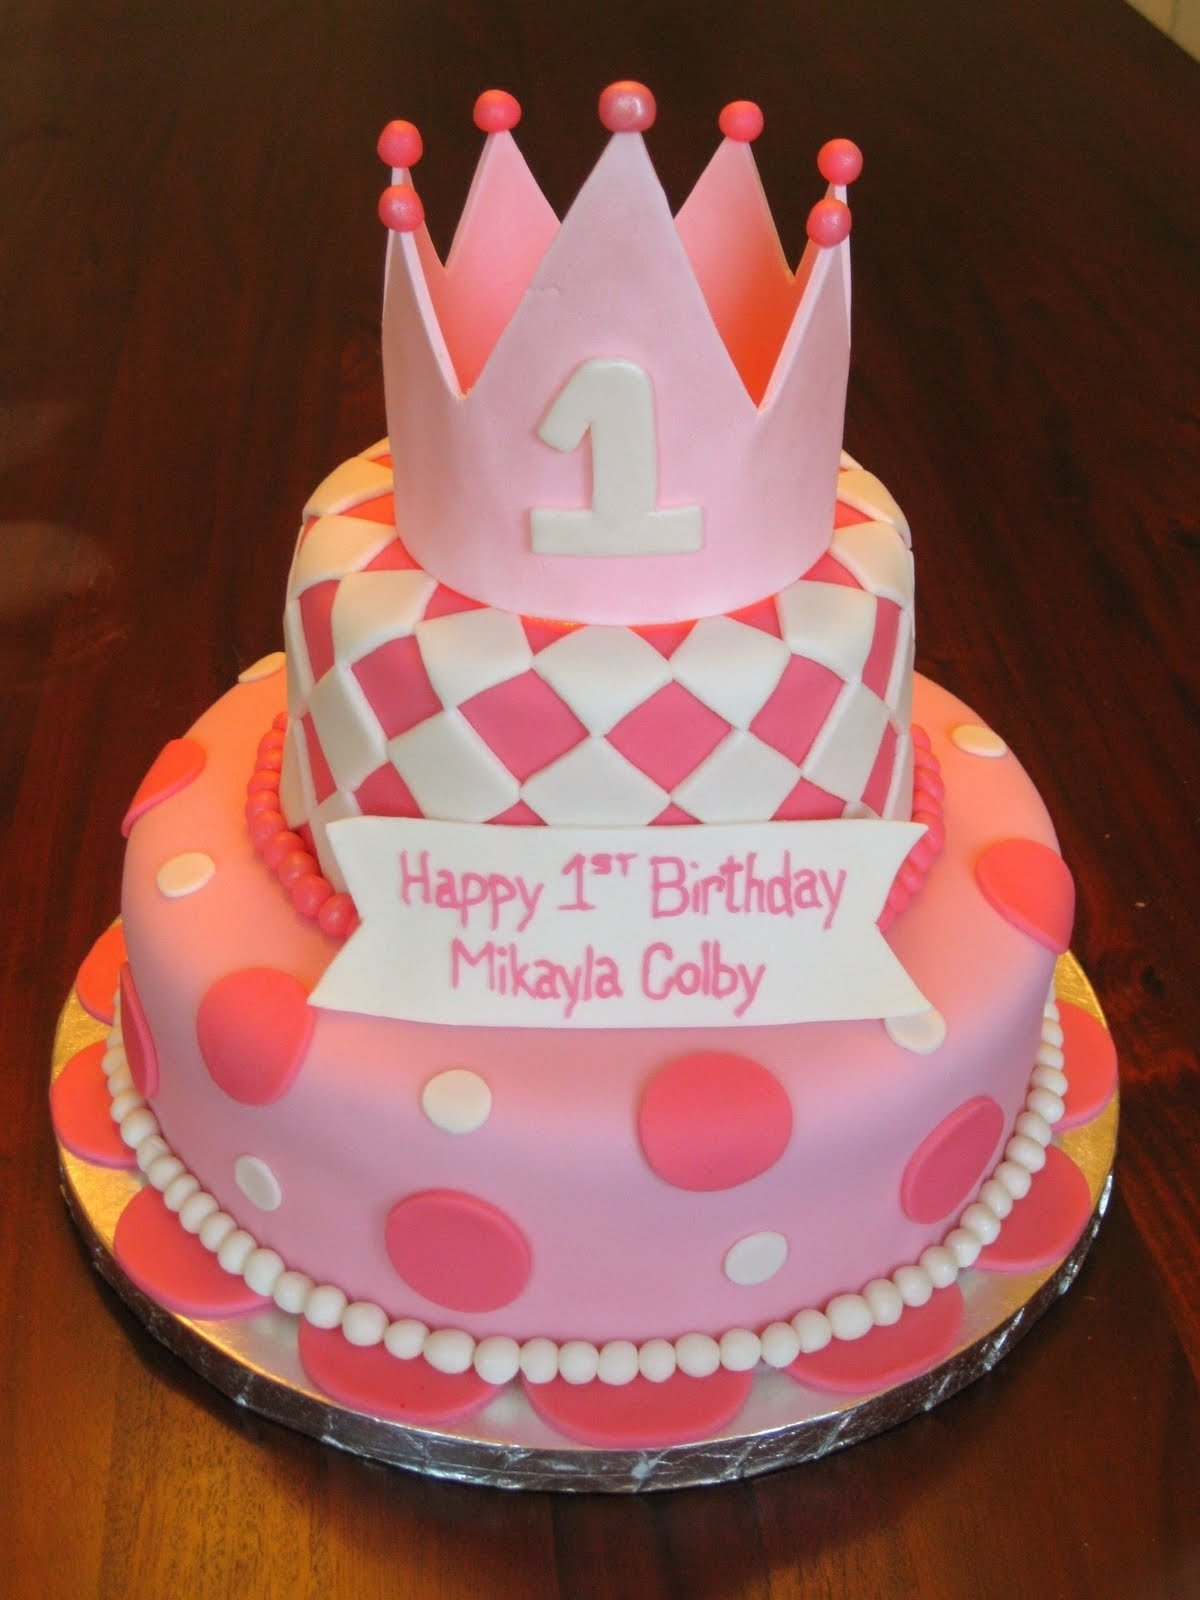 10 Beautiful 1St Birthday Cake Ideas For Girl girls custom fondant birthday cakesbest birthday cakesbest birthday 2020